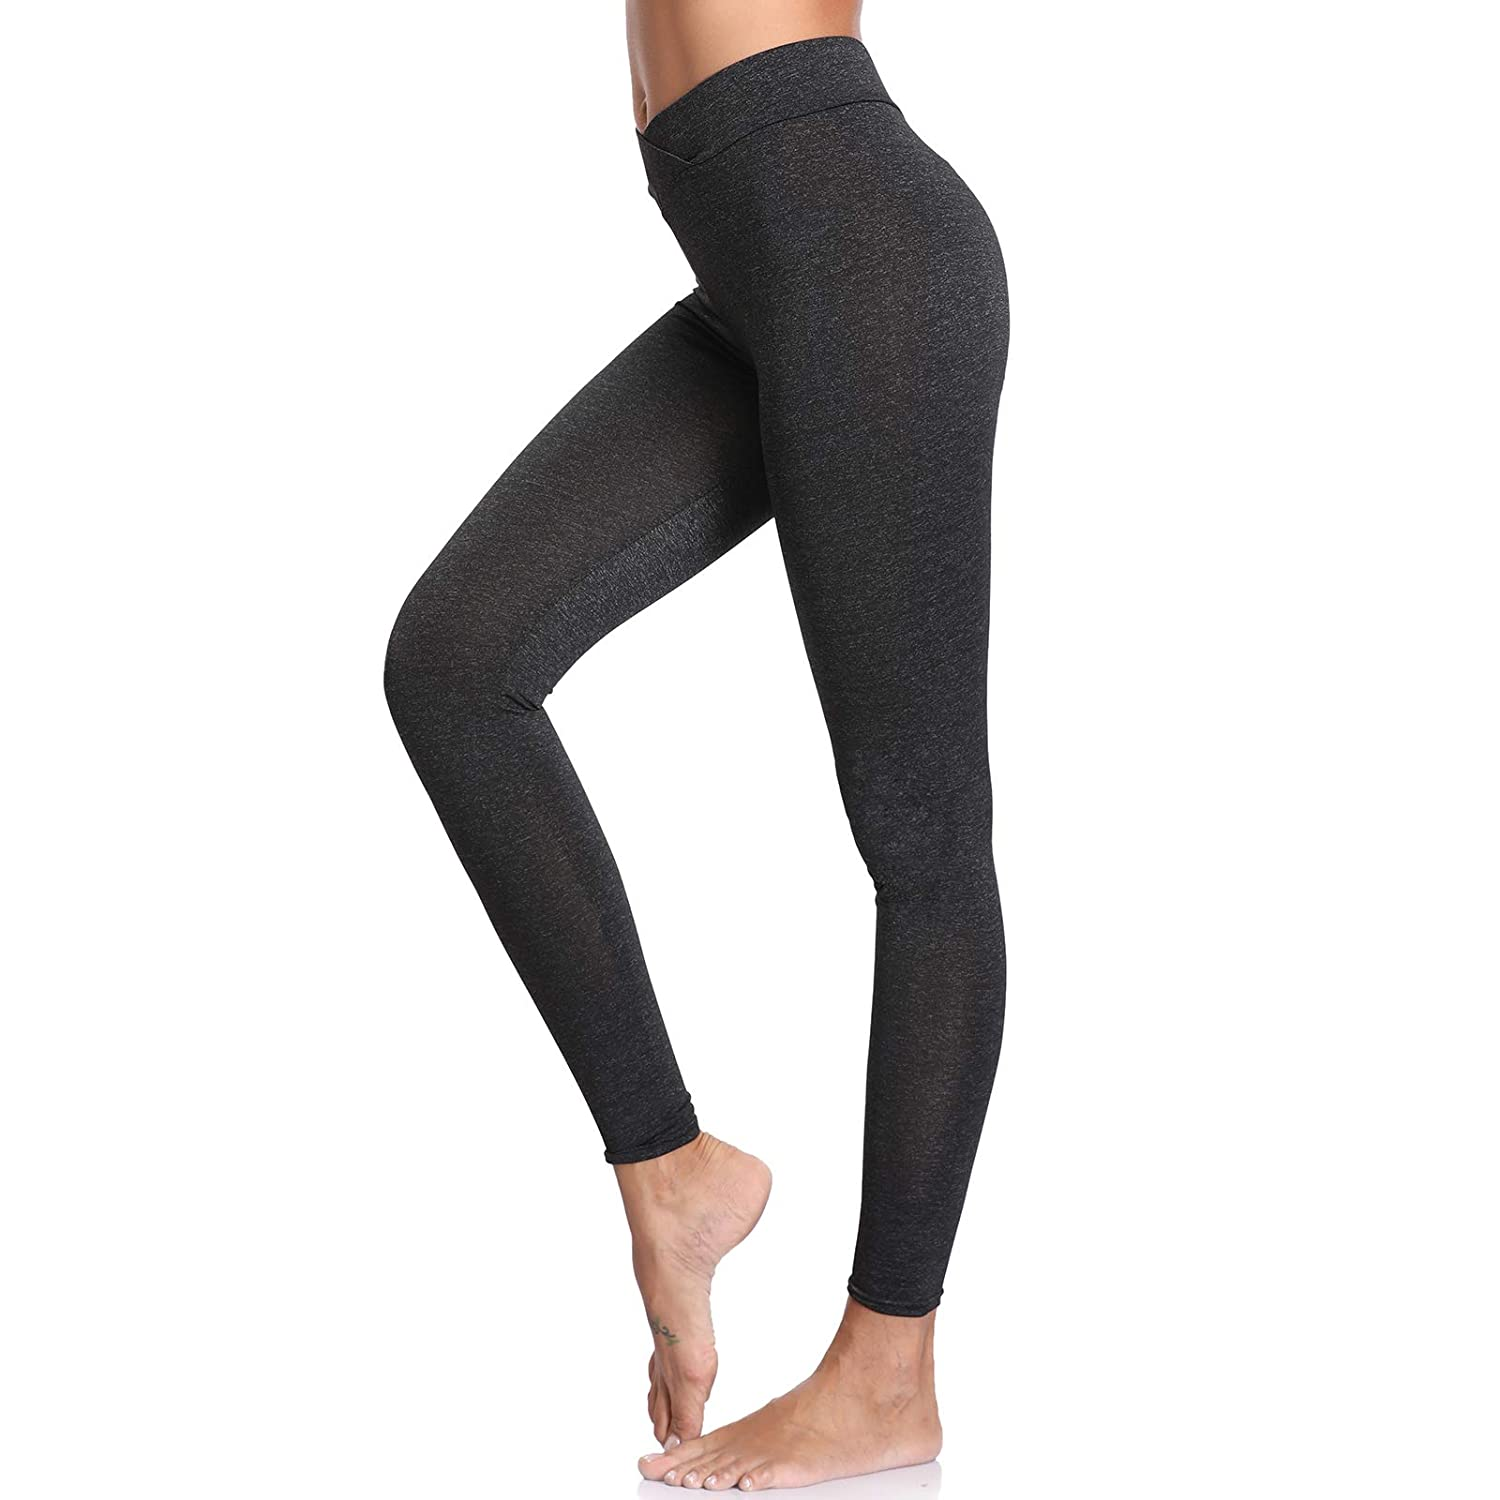 Joyshaper Ruched Butt Leggings Women Black Grey Capri Trousers Tights Yoga Pants Slimming High Waisted Push Up Butt Lifter Running Gym Workout Fitness Training Tummy Control